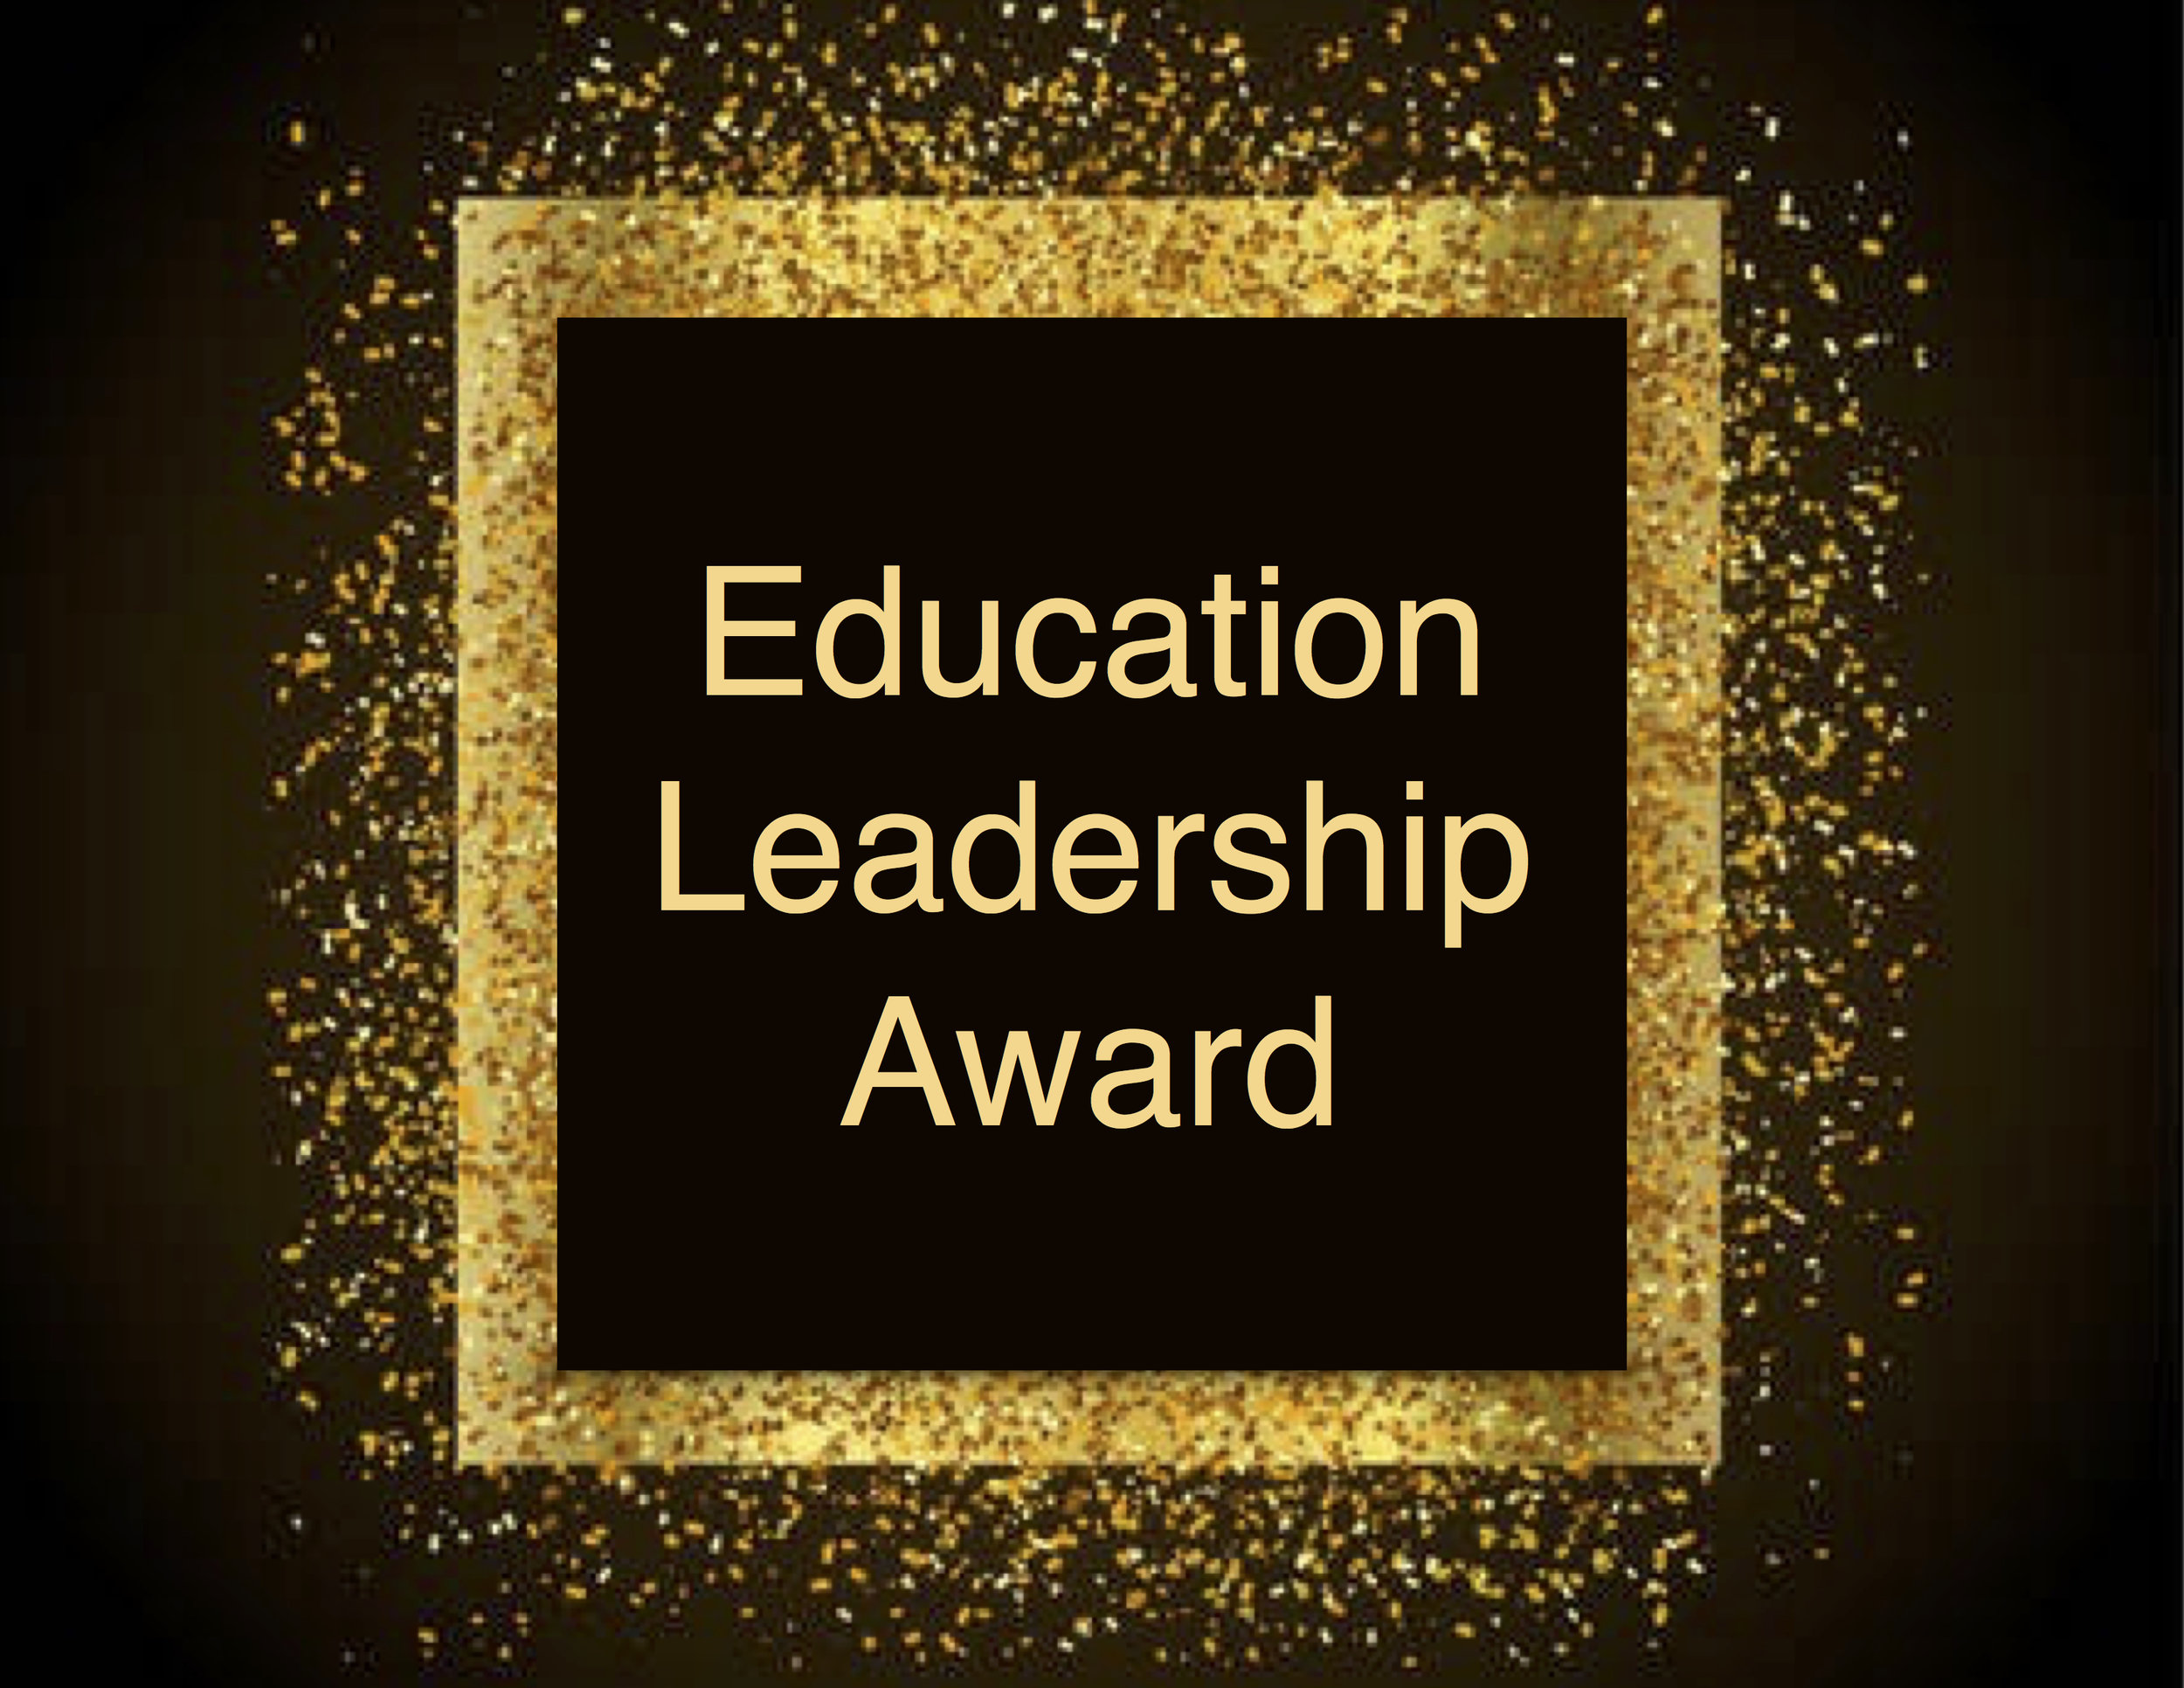 Education Leadership Award.jpg